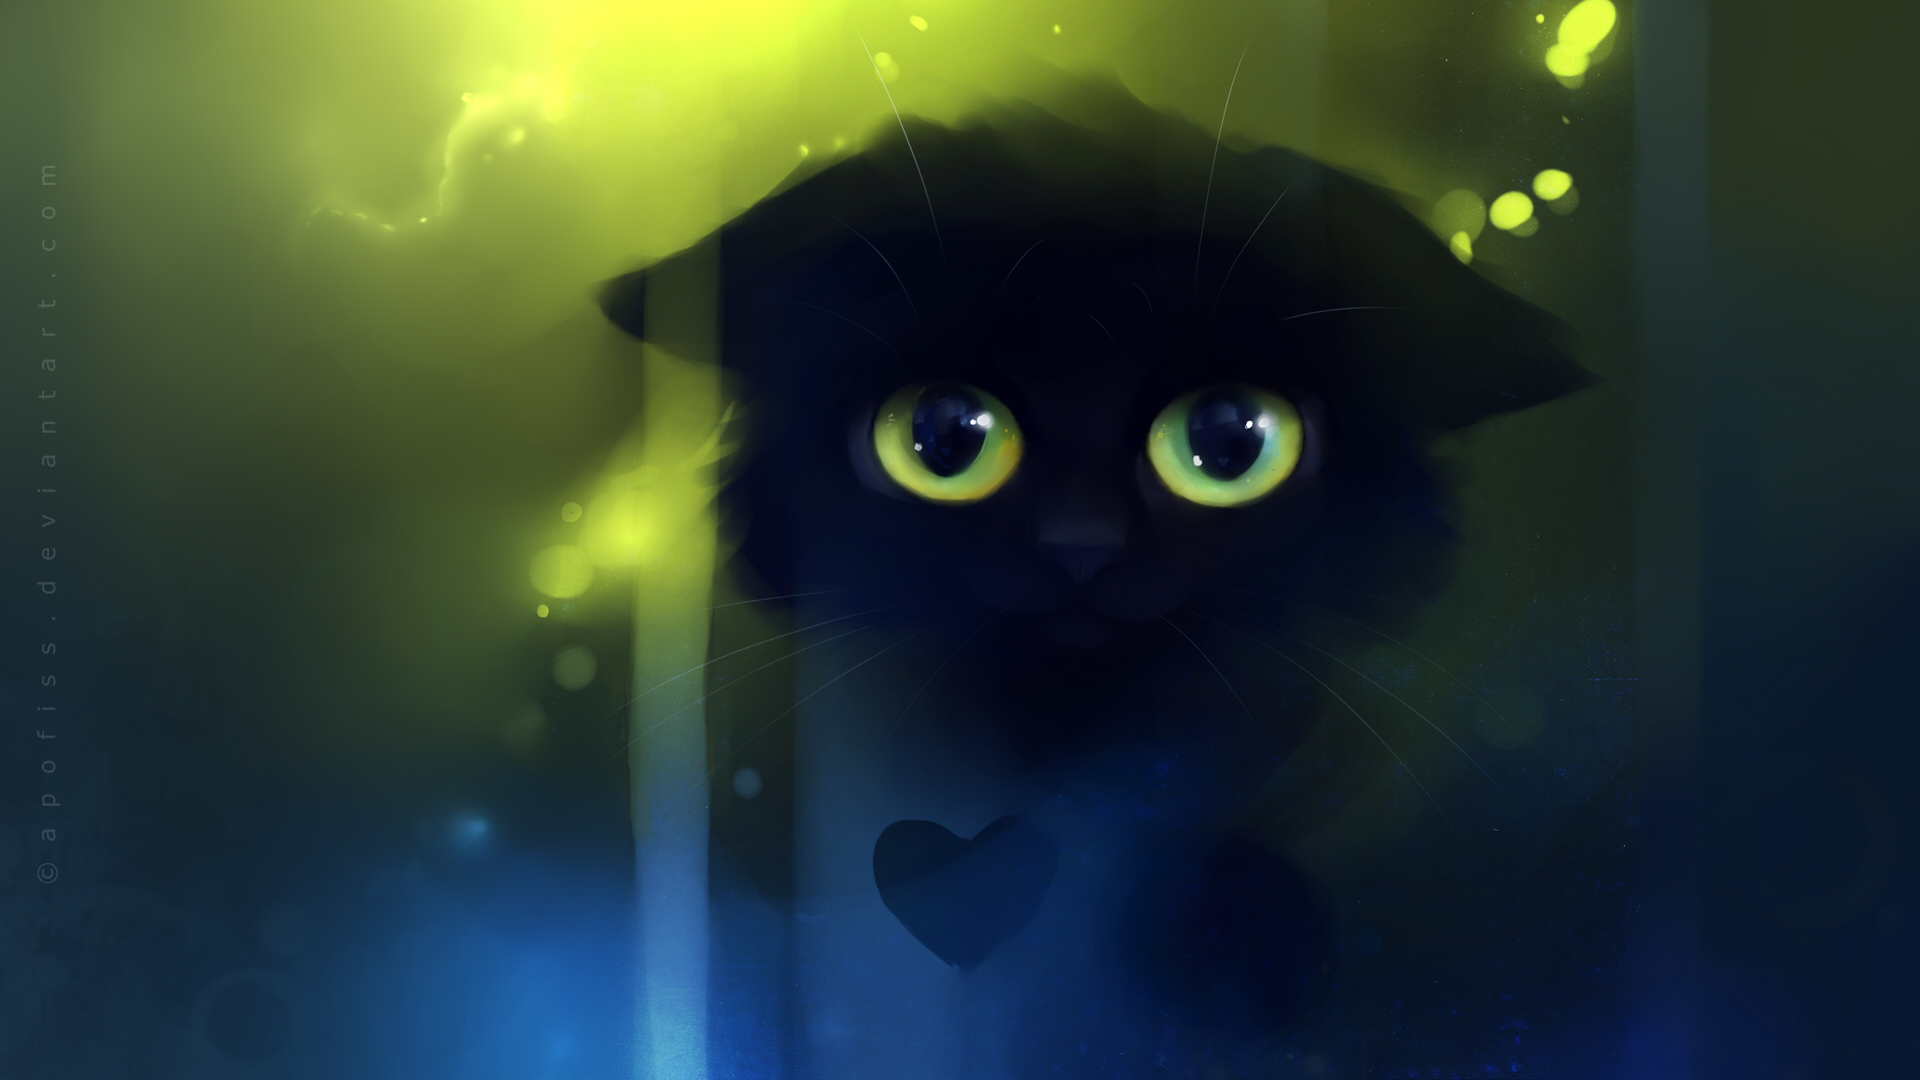 cat picture1920x1080 with apofisssolohighresblack hairgreen eyesblack 1920x1080